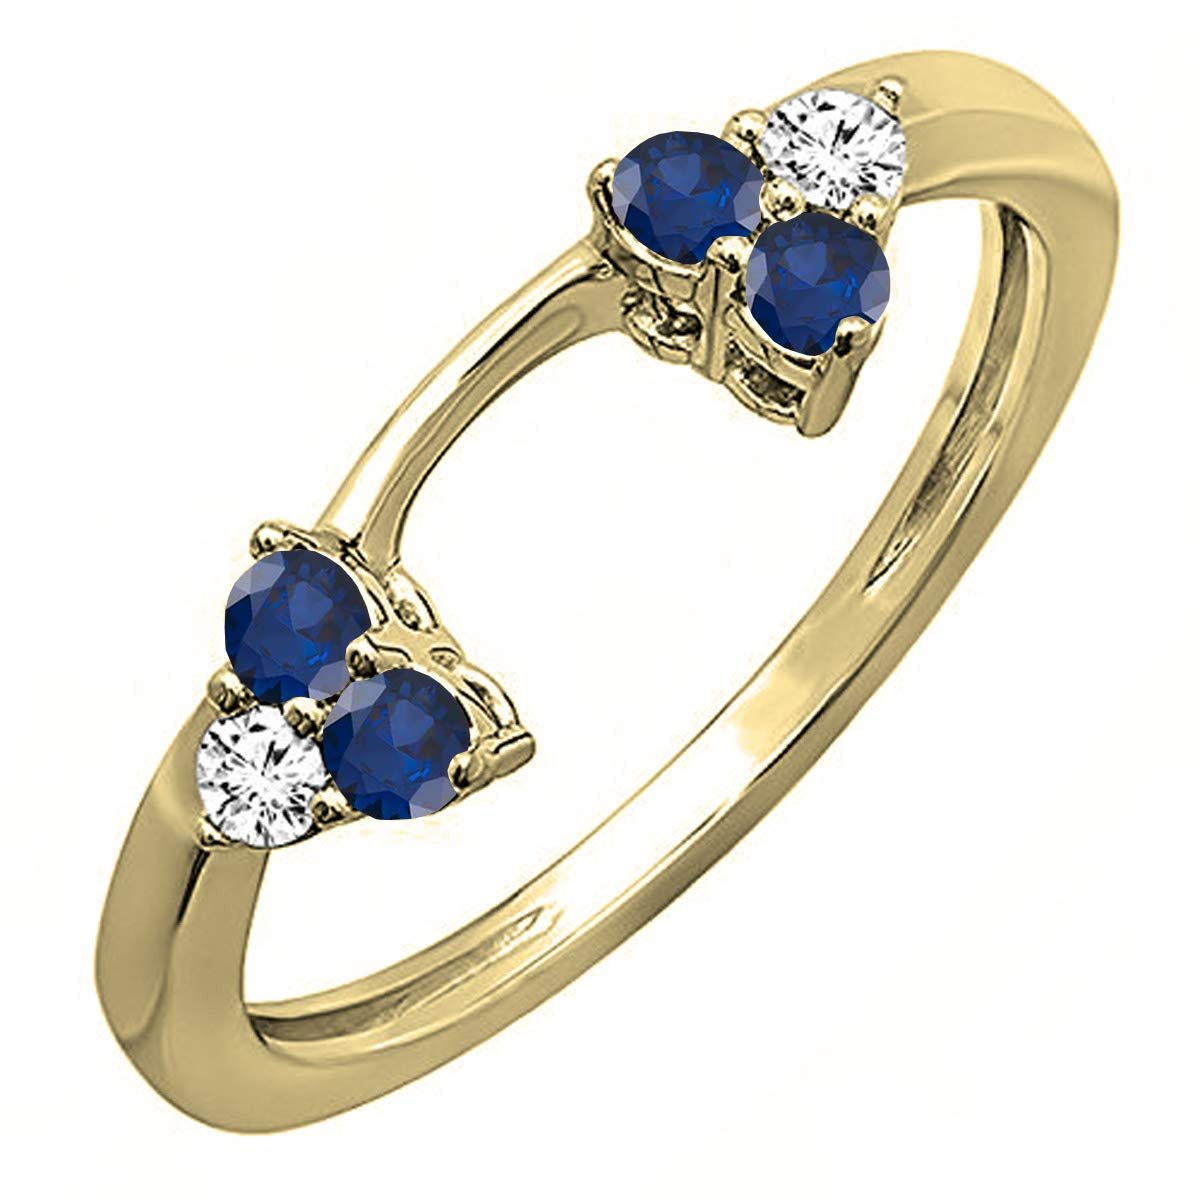 Dazzlingrock Collection 14K Round Blue Sapphire & White Diamond Ladies Wedding Ring Matching Guard Band, Yellow Gold, Size 7